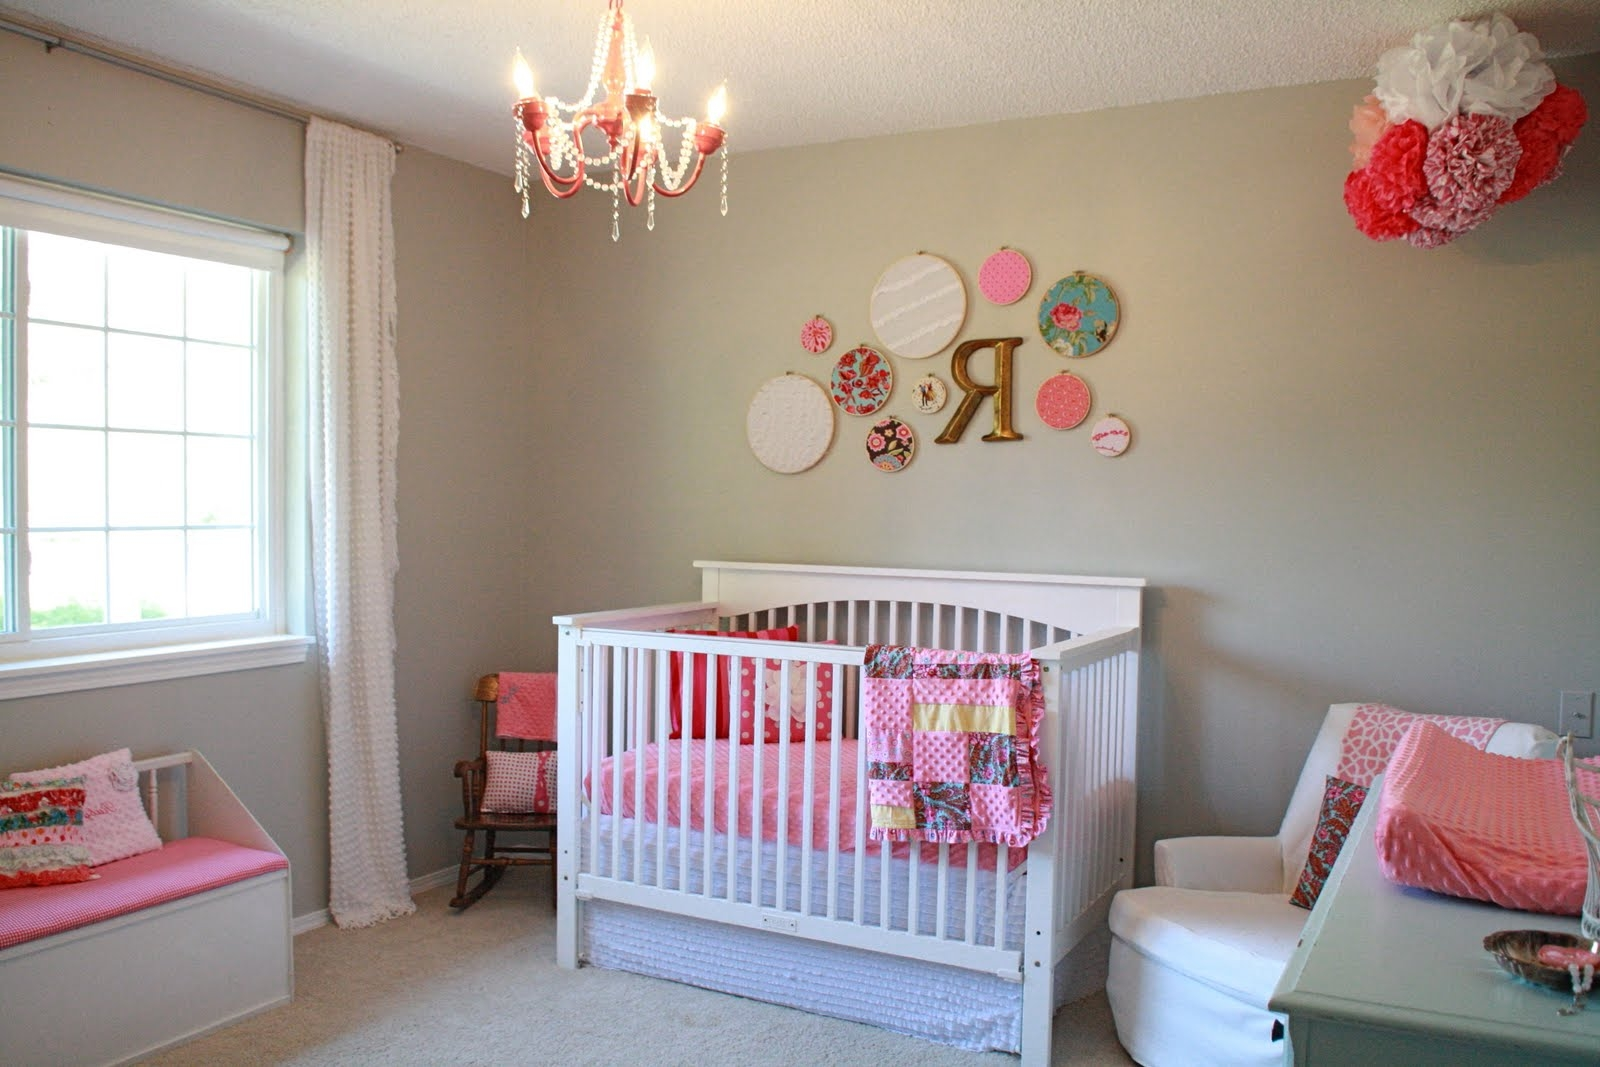 Baby girl room decor ideas Baby girl room ideas